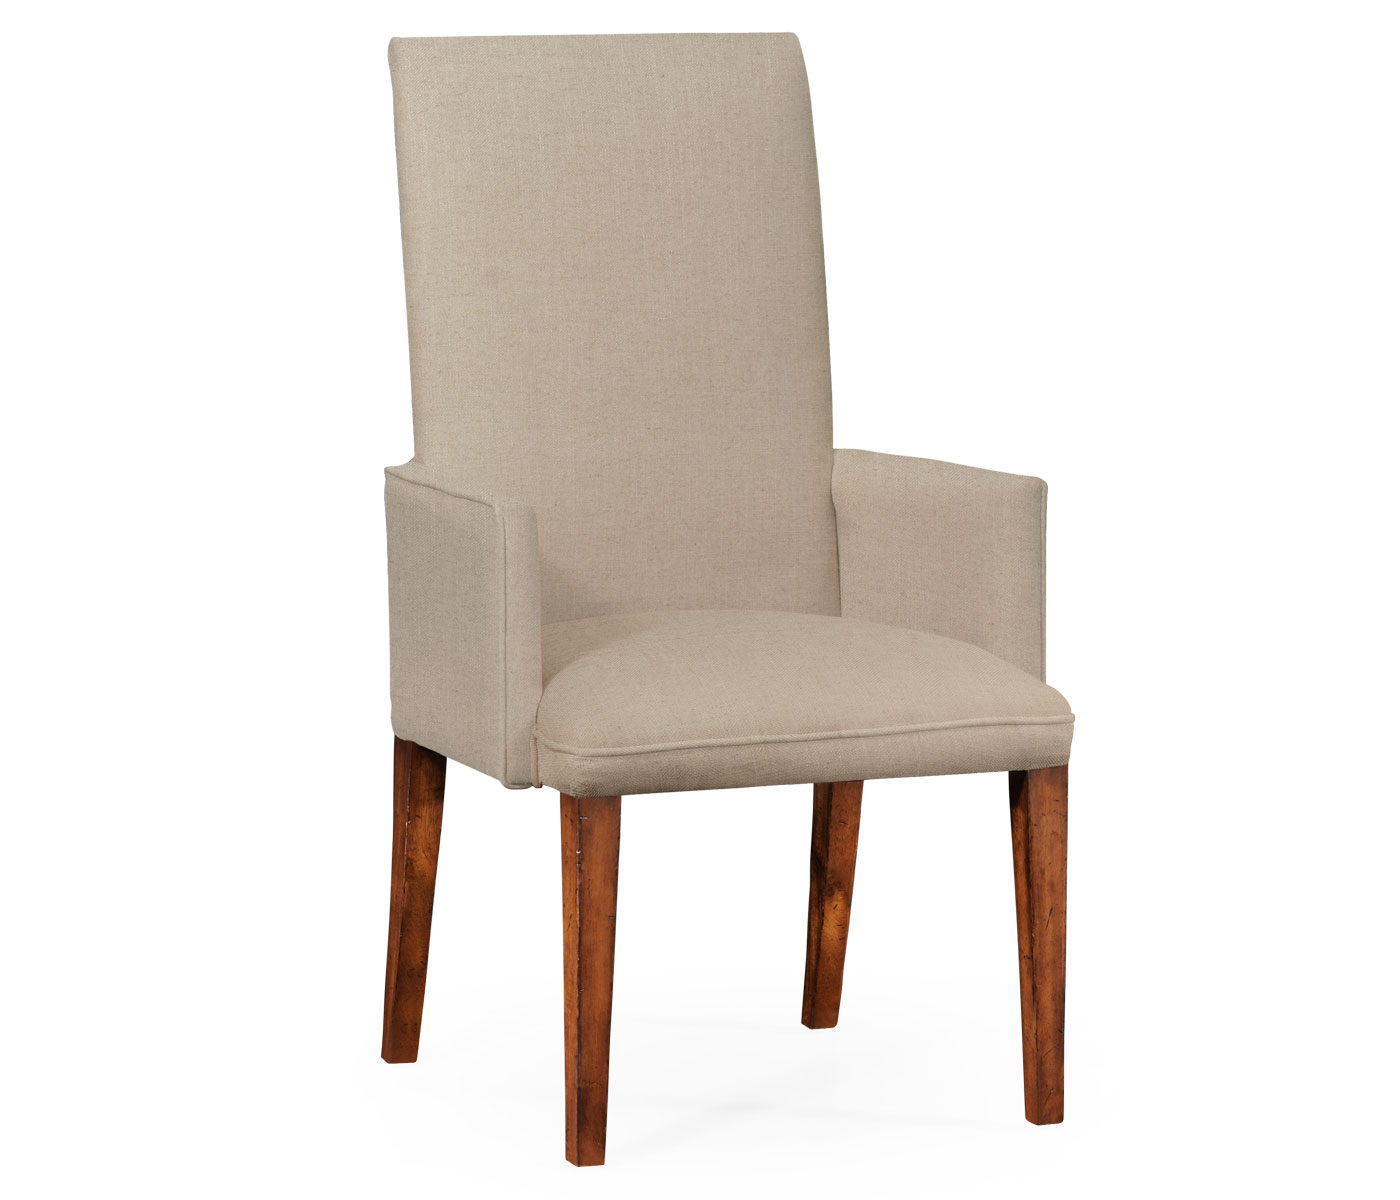 Upholstered Dining Chairs Fully Upholstered Dining Chair Arm